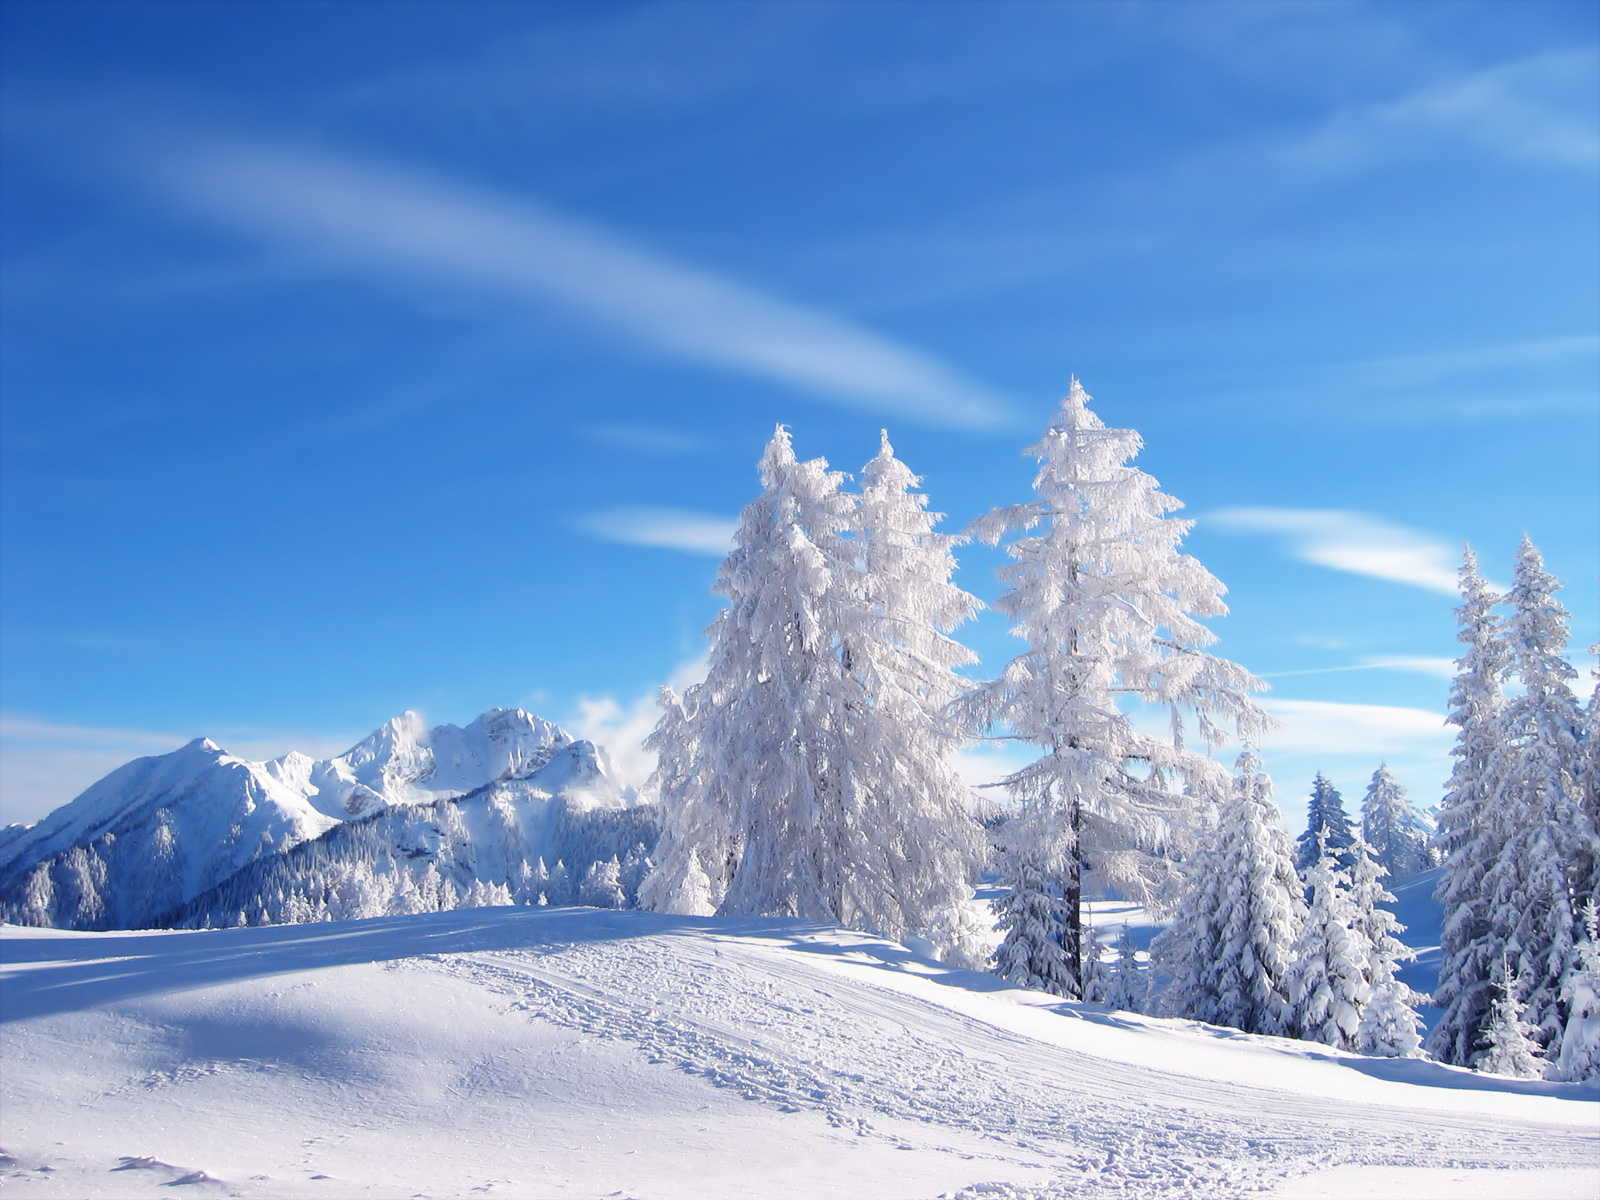 HD Winter Landscape Wallpapers HD Nature Wallpapers 1600x1200